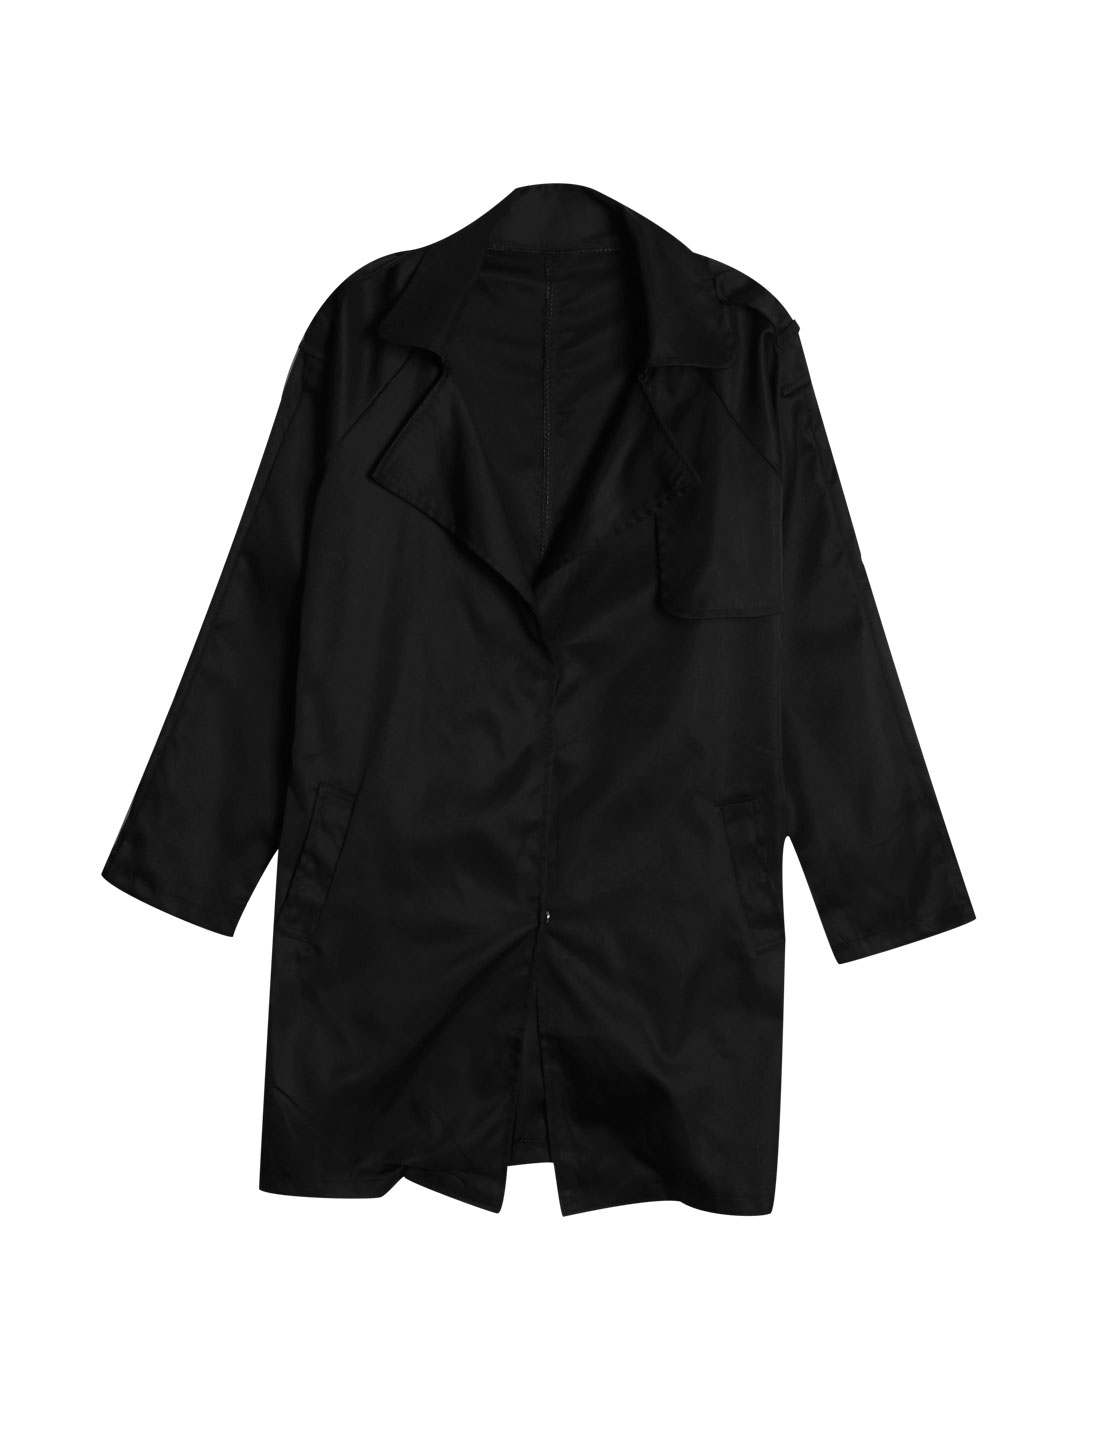 Women Hidden Single Breasted Double Slant Pockets Trench Coat Black M